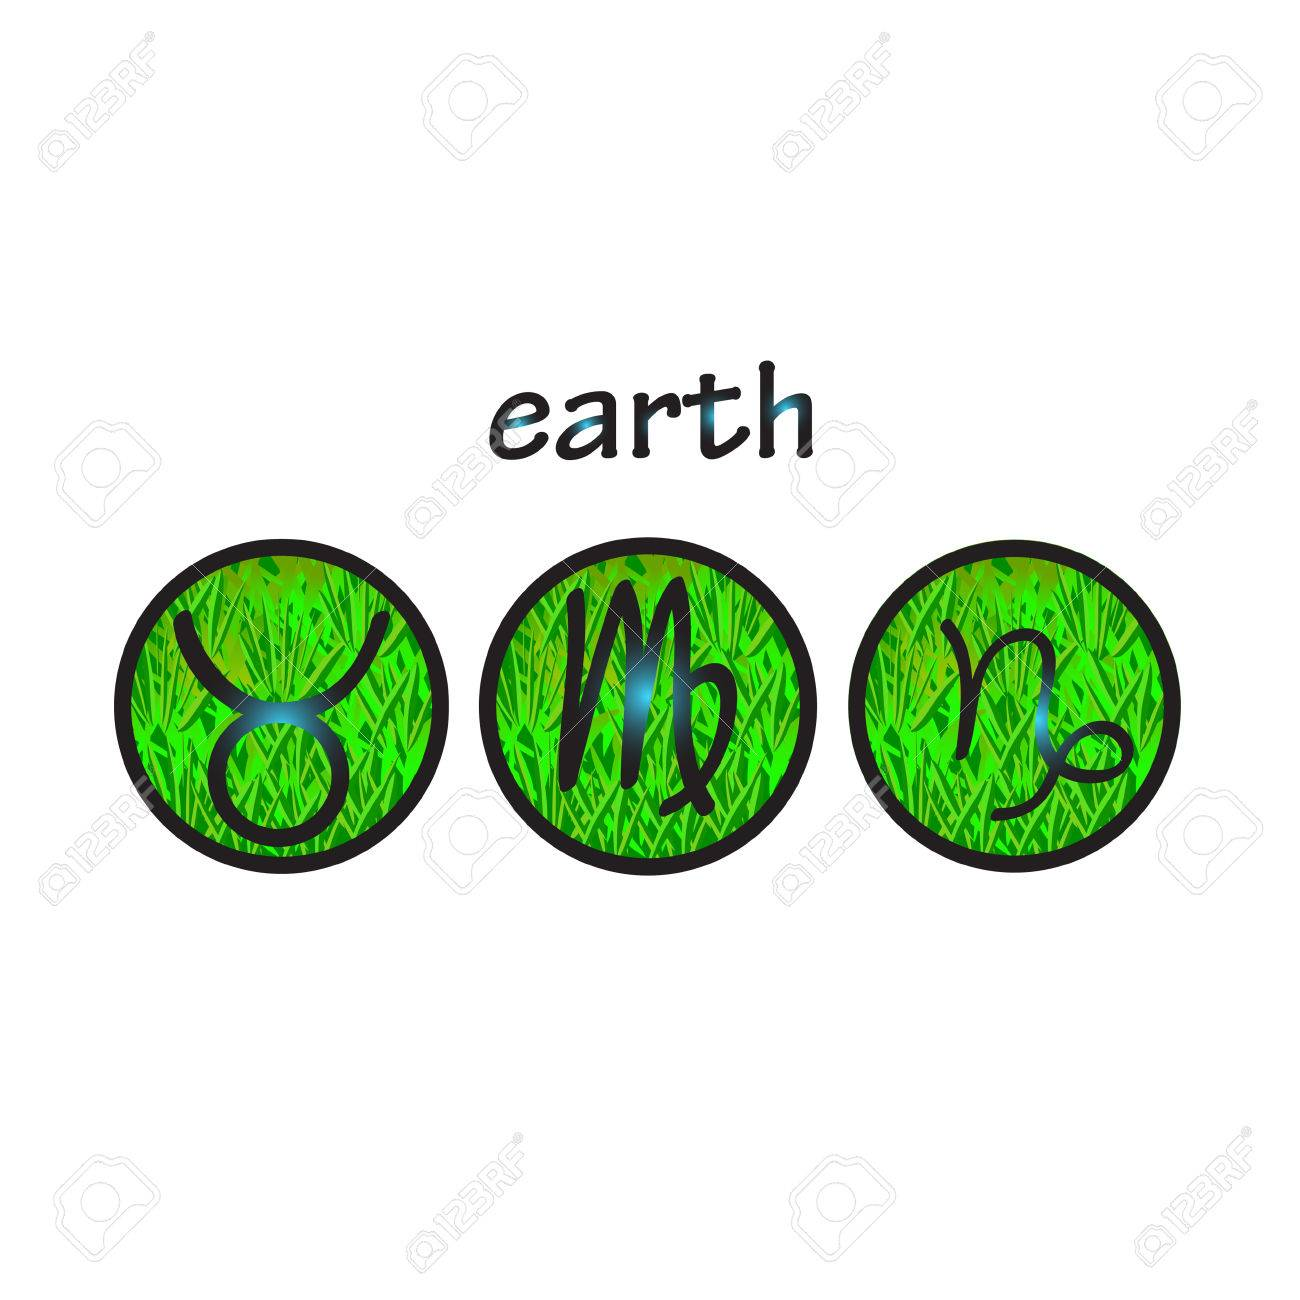 Horoscope symbols earth element taurus virgo capricorn royalty horoscope symbols earth element taurus virgo capricorn stock vector 52485984 buycottarizona